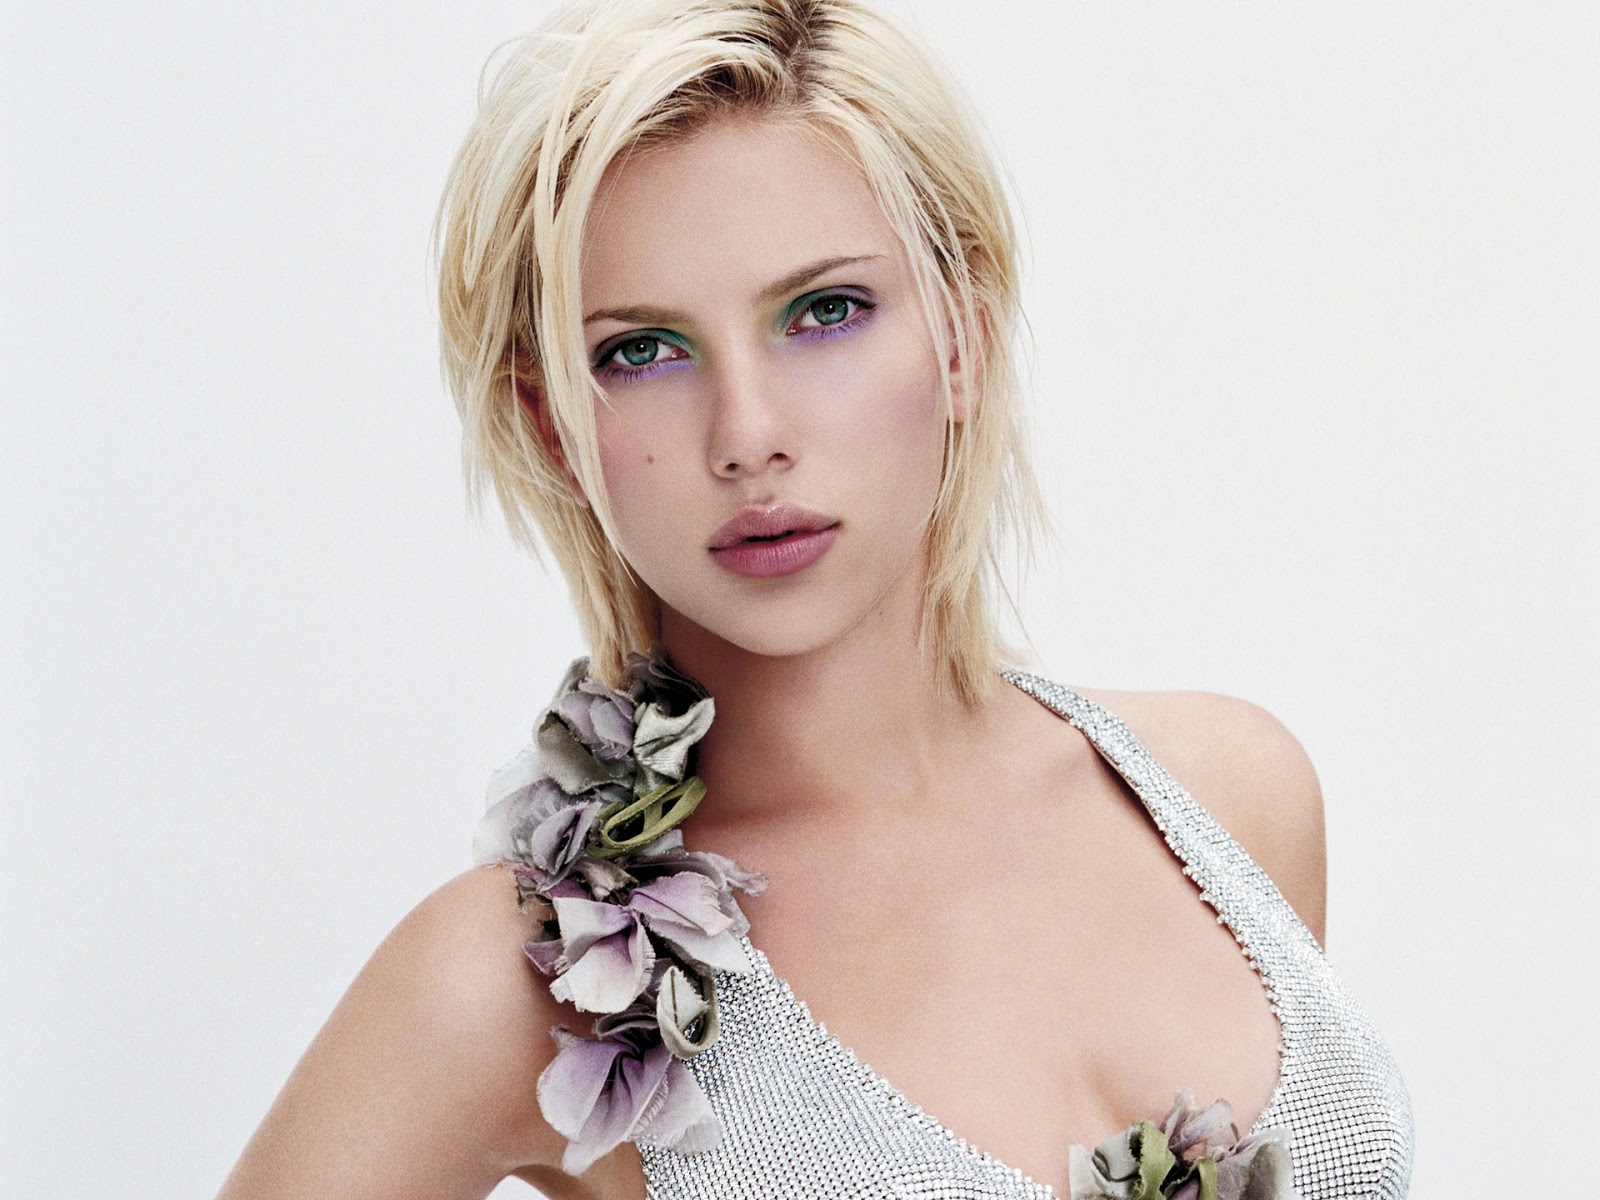 WallpapersWide Scarlett Johansson HD Desktop  - scarlett johansson hd wallpapers